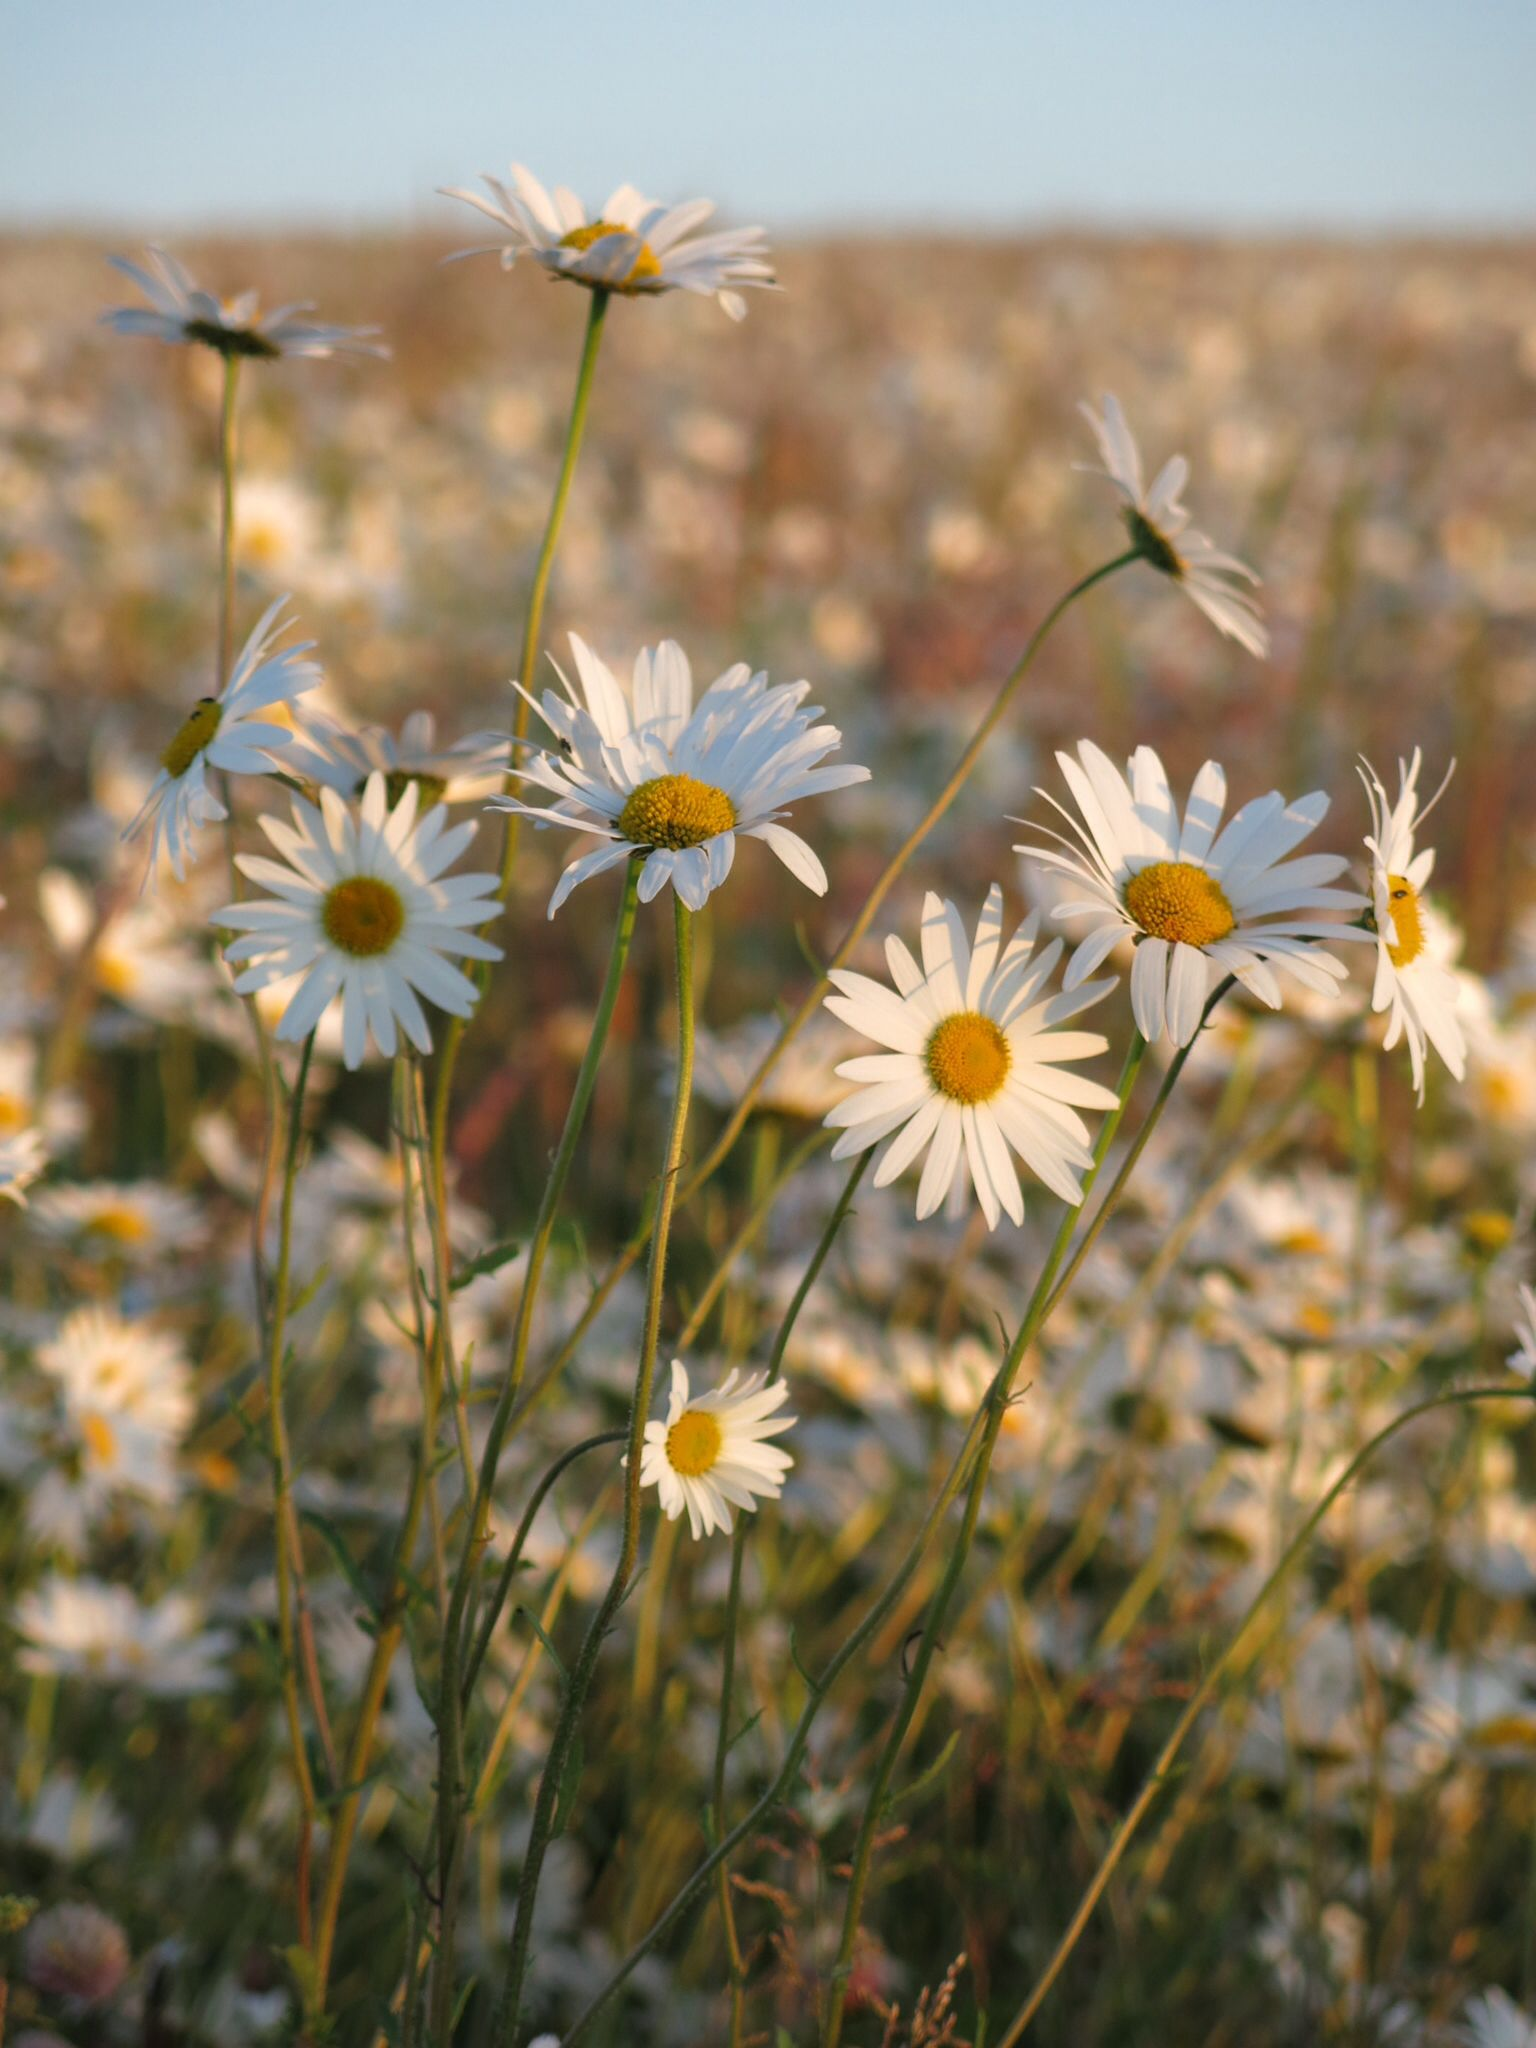 Daisy field near me at sunset Where to buy flowers